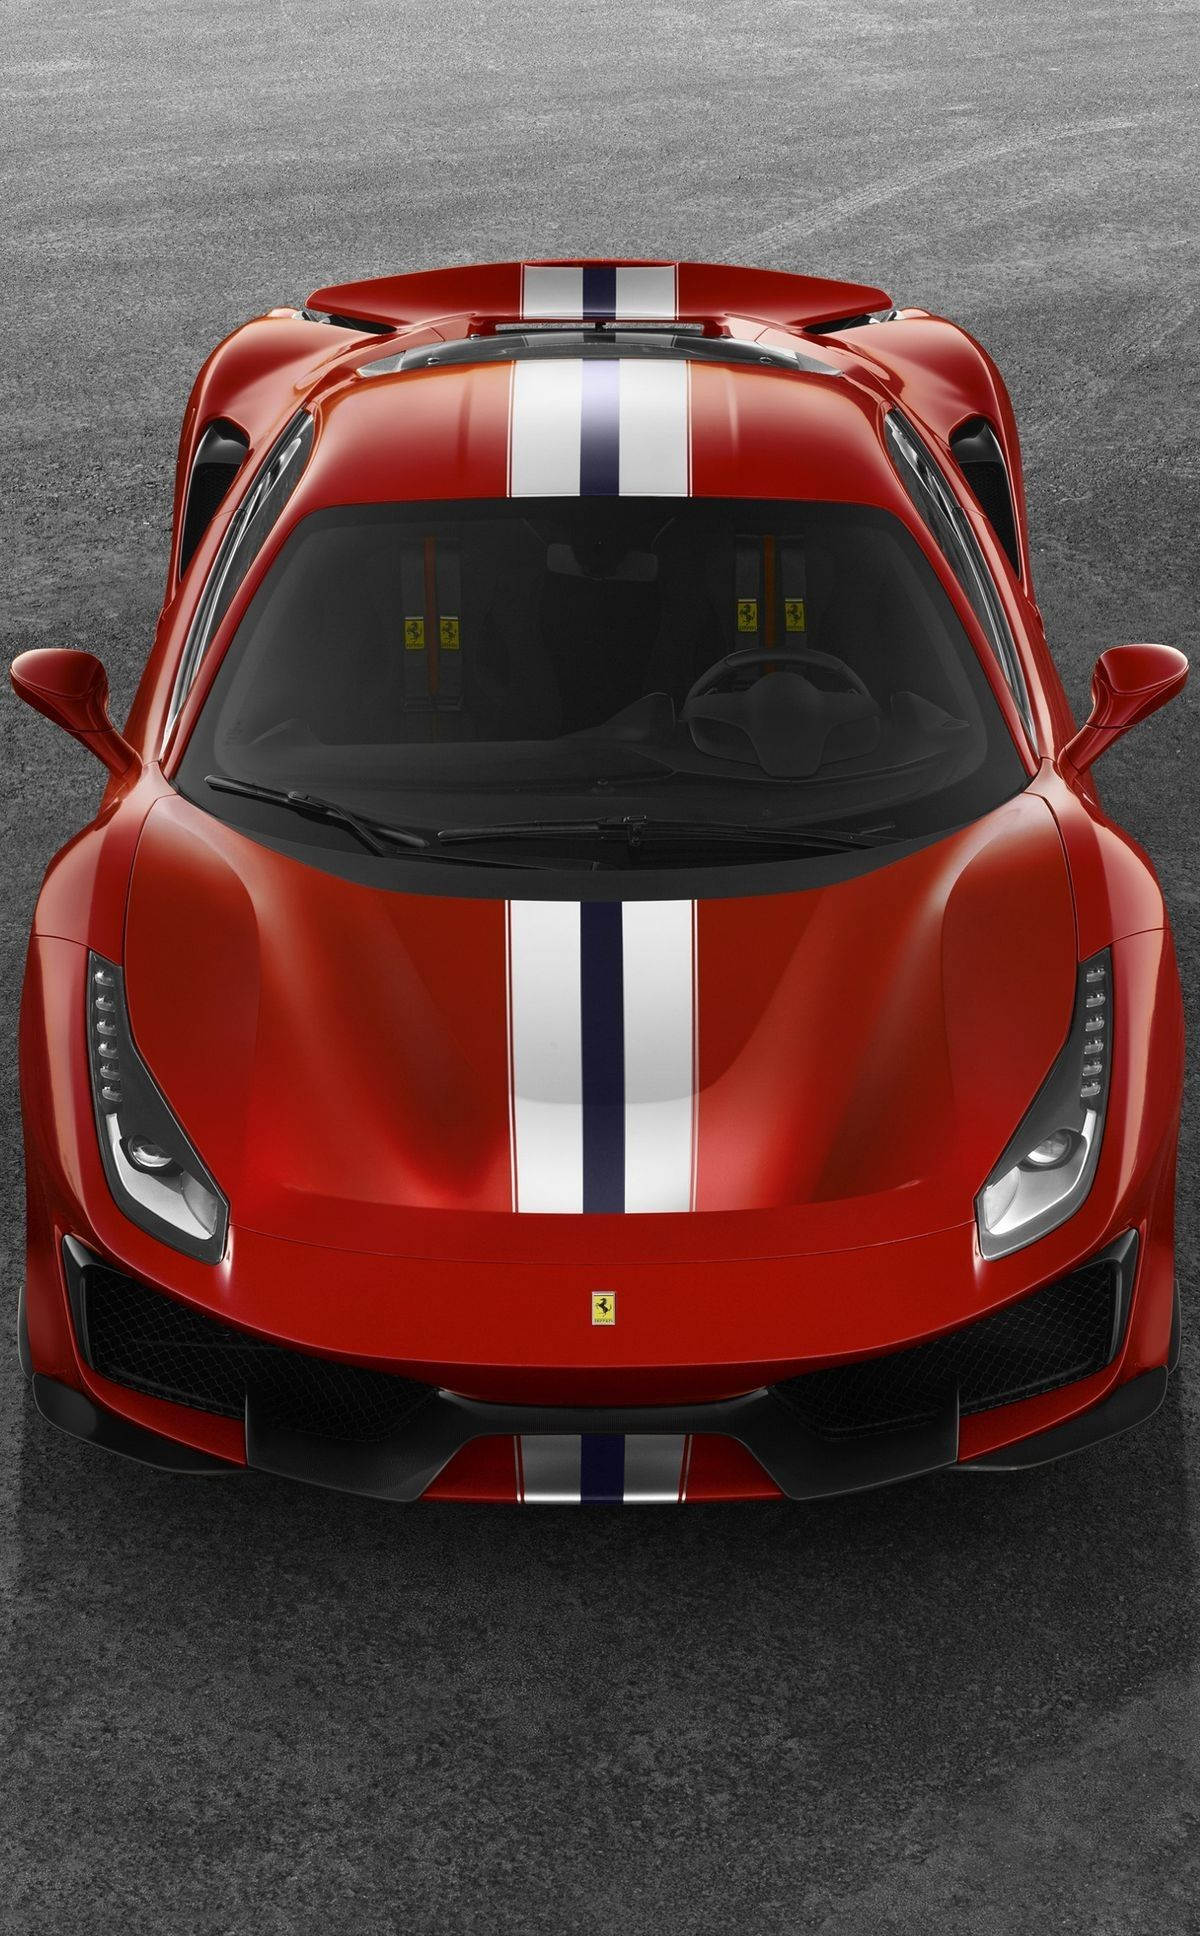 Pin By Jorge Byron Ramirez Lopez On Auto In 2020 Ferrari 488 Ferrari Super Cars